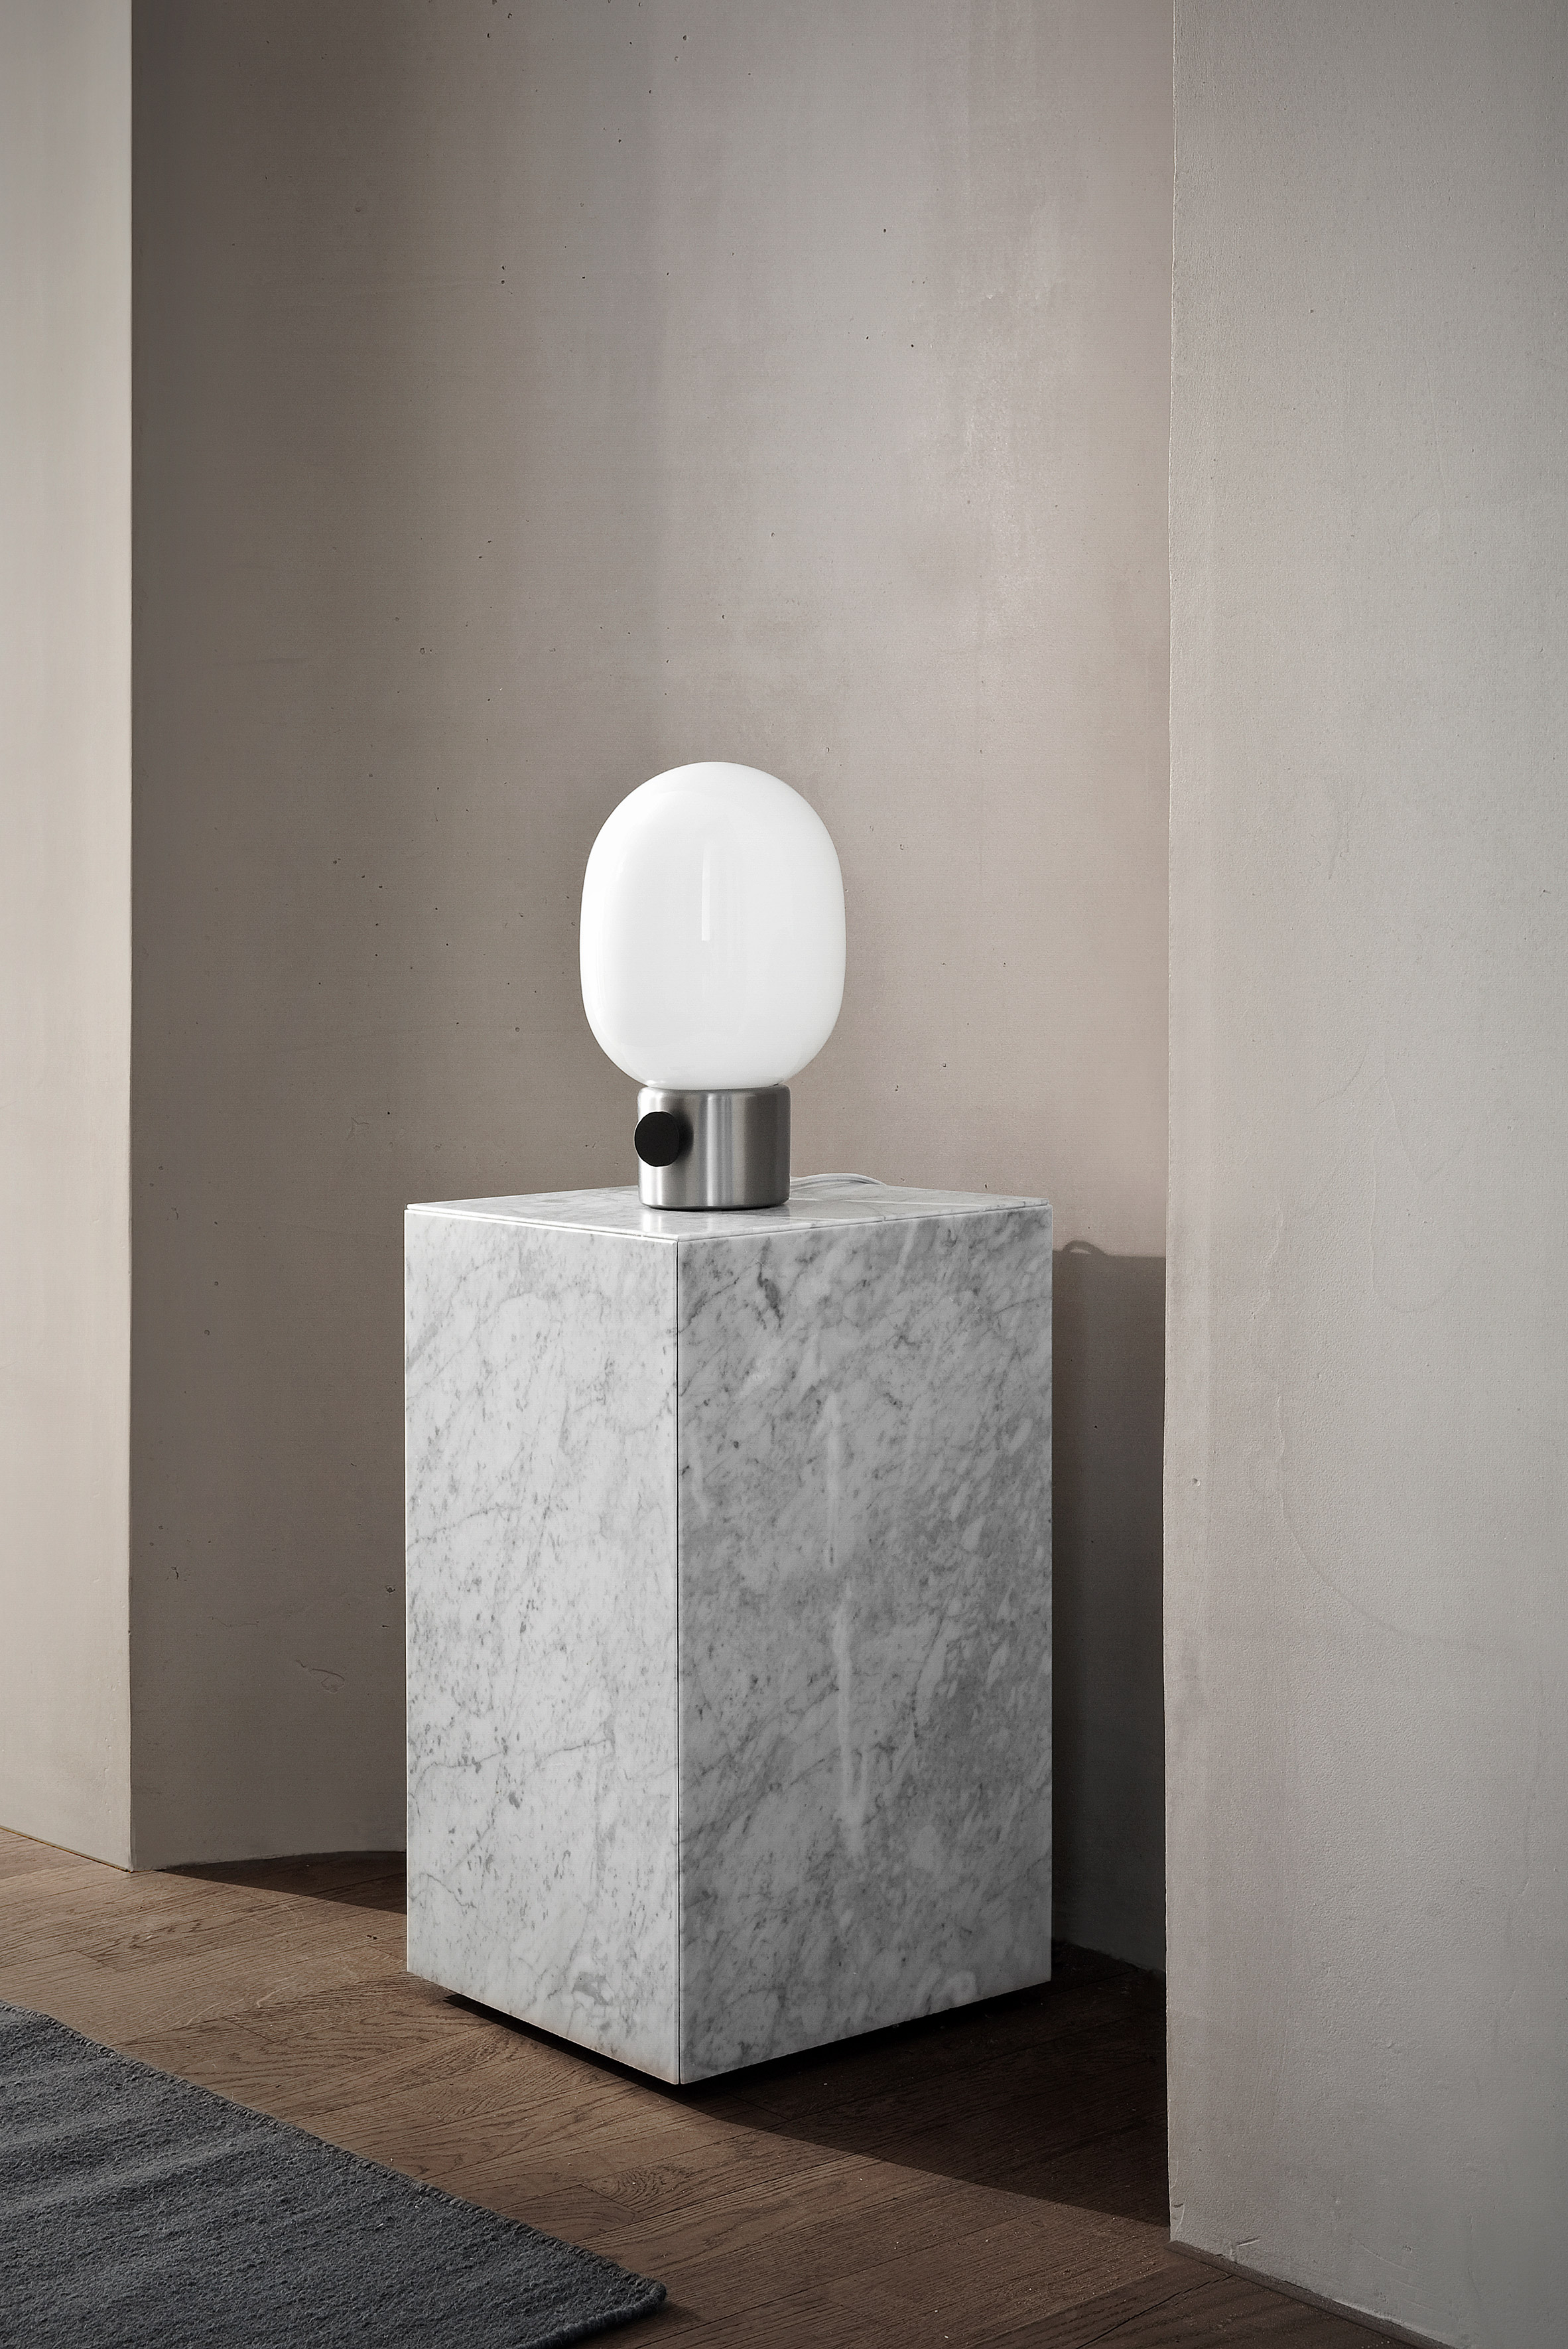 This minimalist lamp is not only a design but also a sculpture